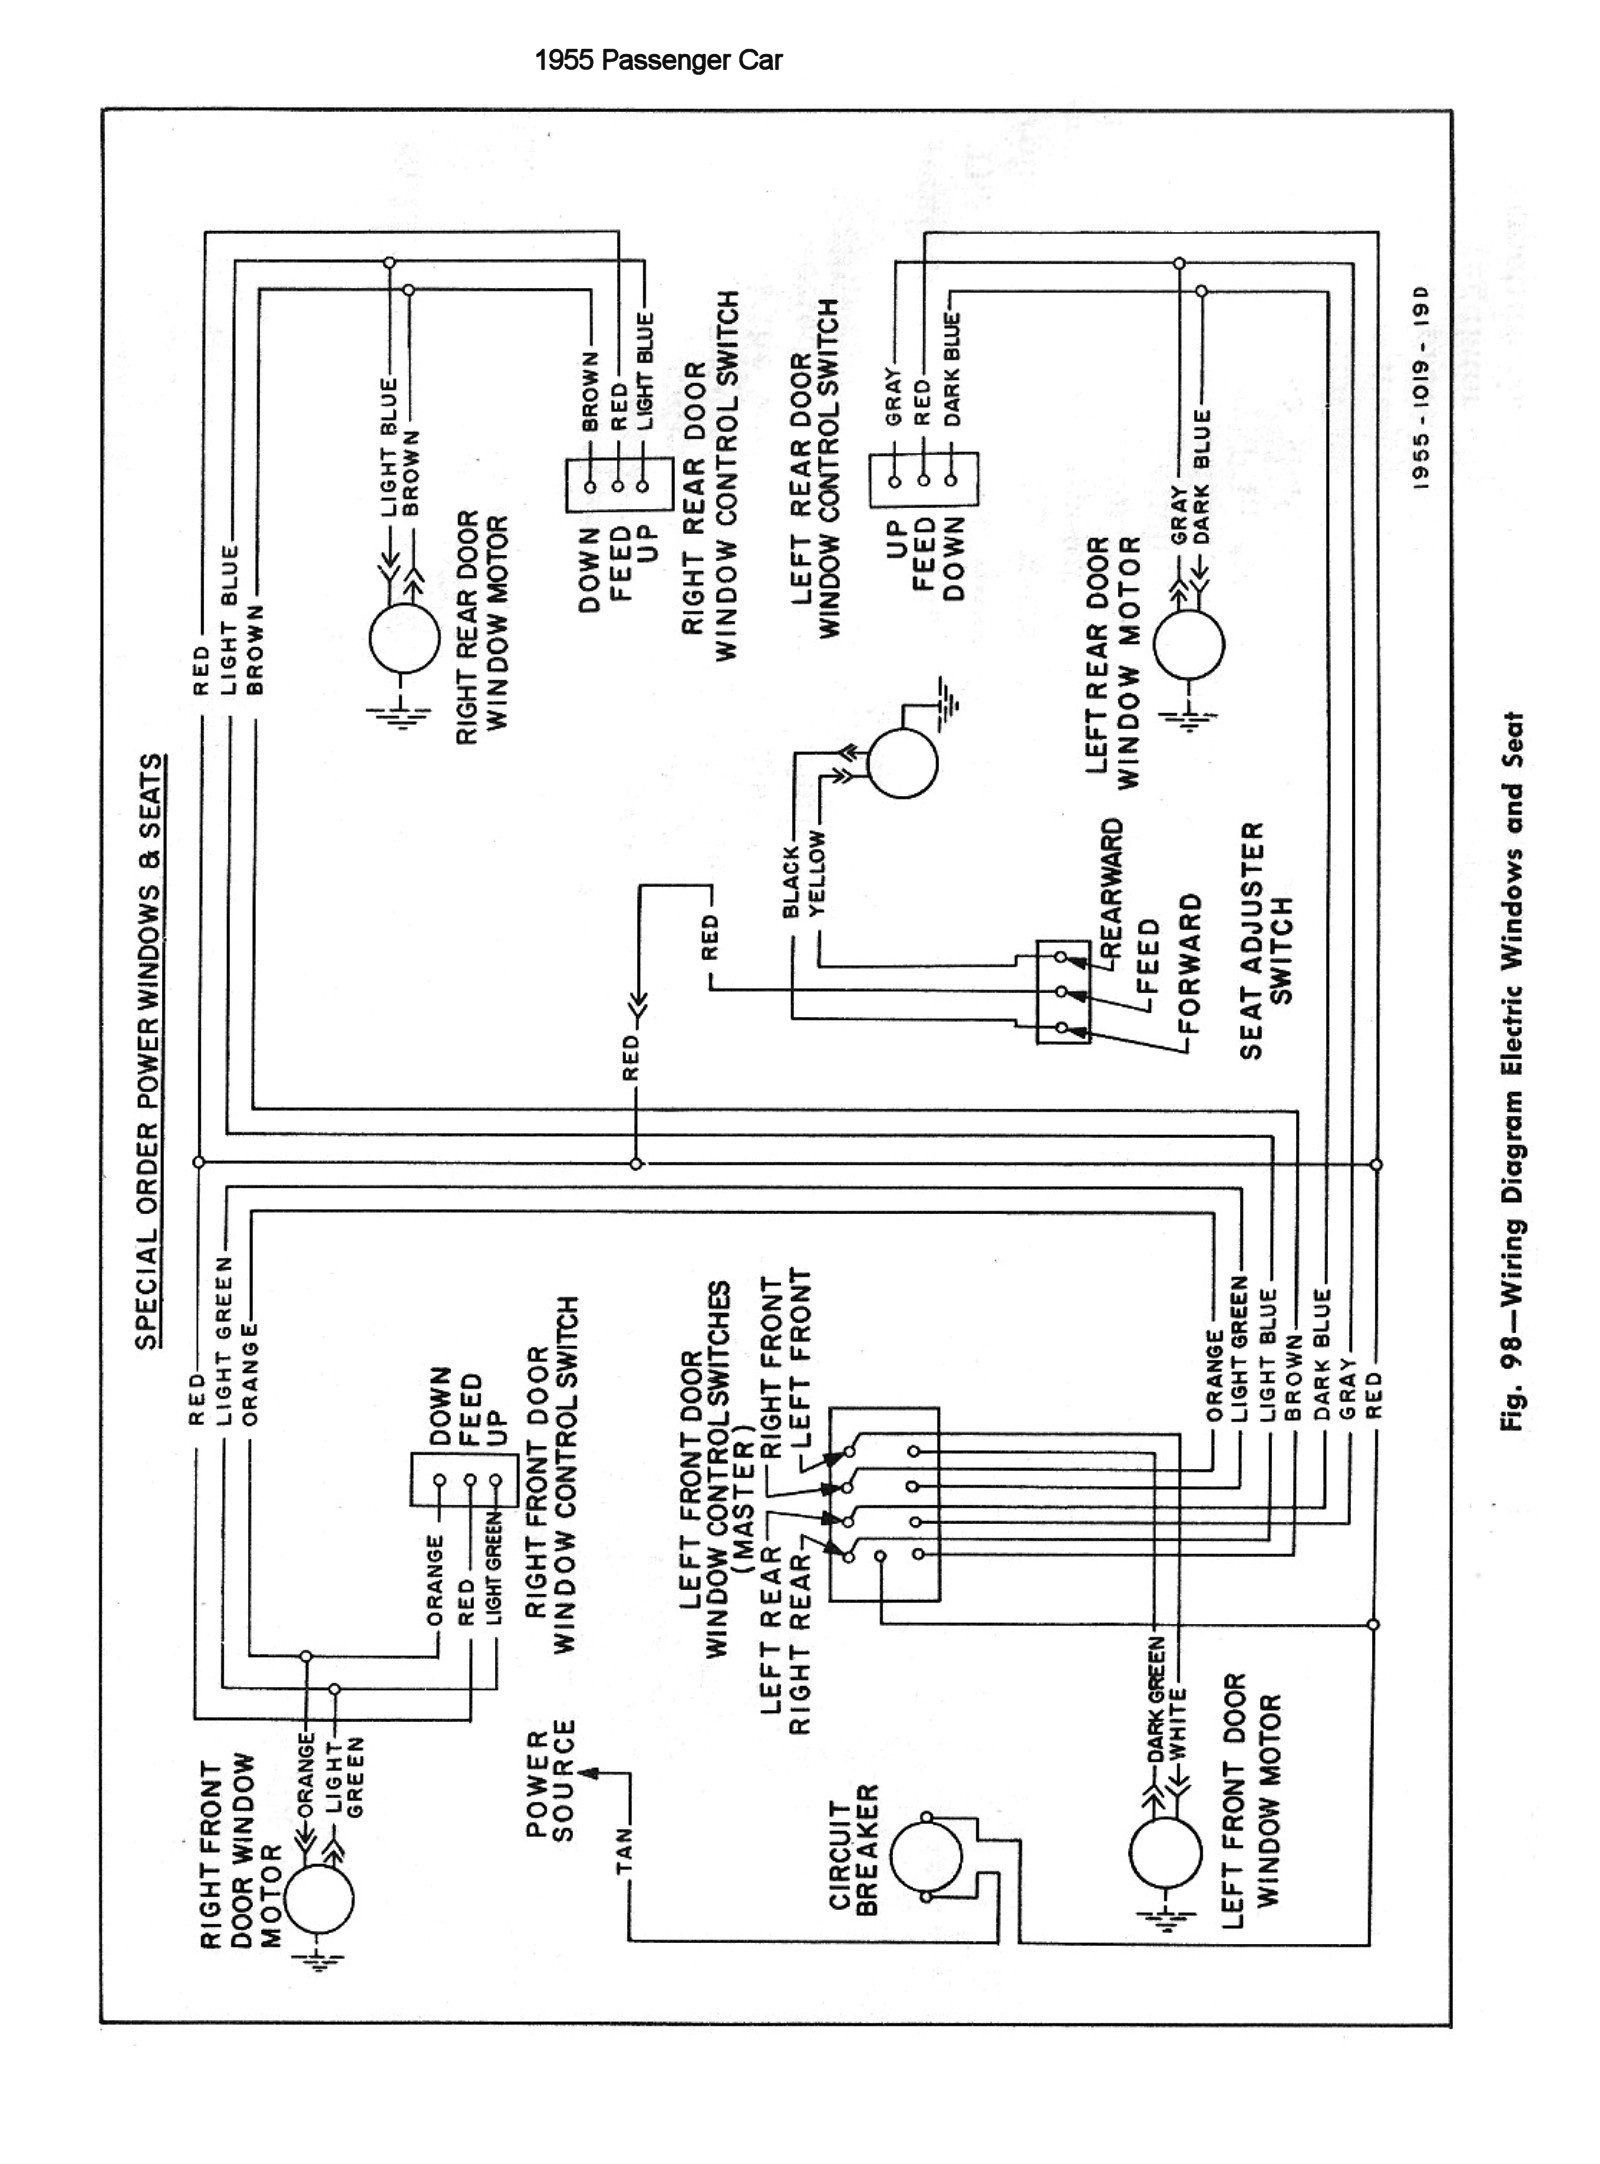 hight resolution of 1955 ford turn signal wiring diagram wiring diagram for you 1955 chevy turn signal wiring diagram